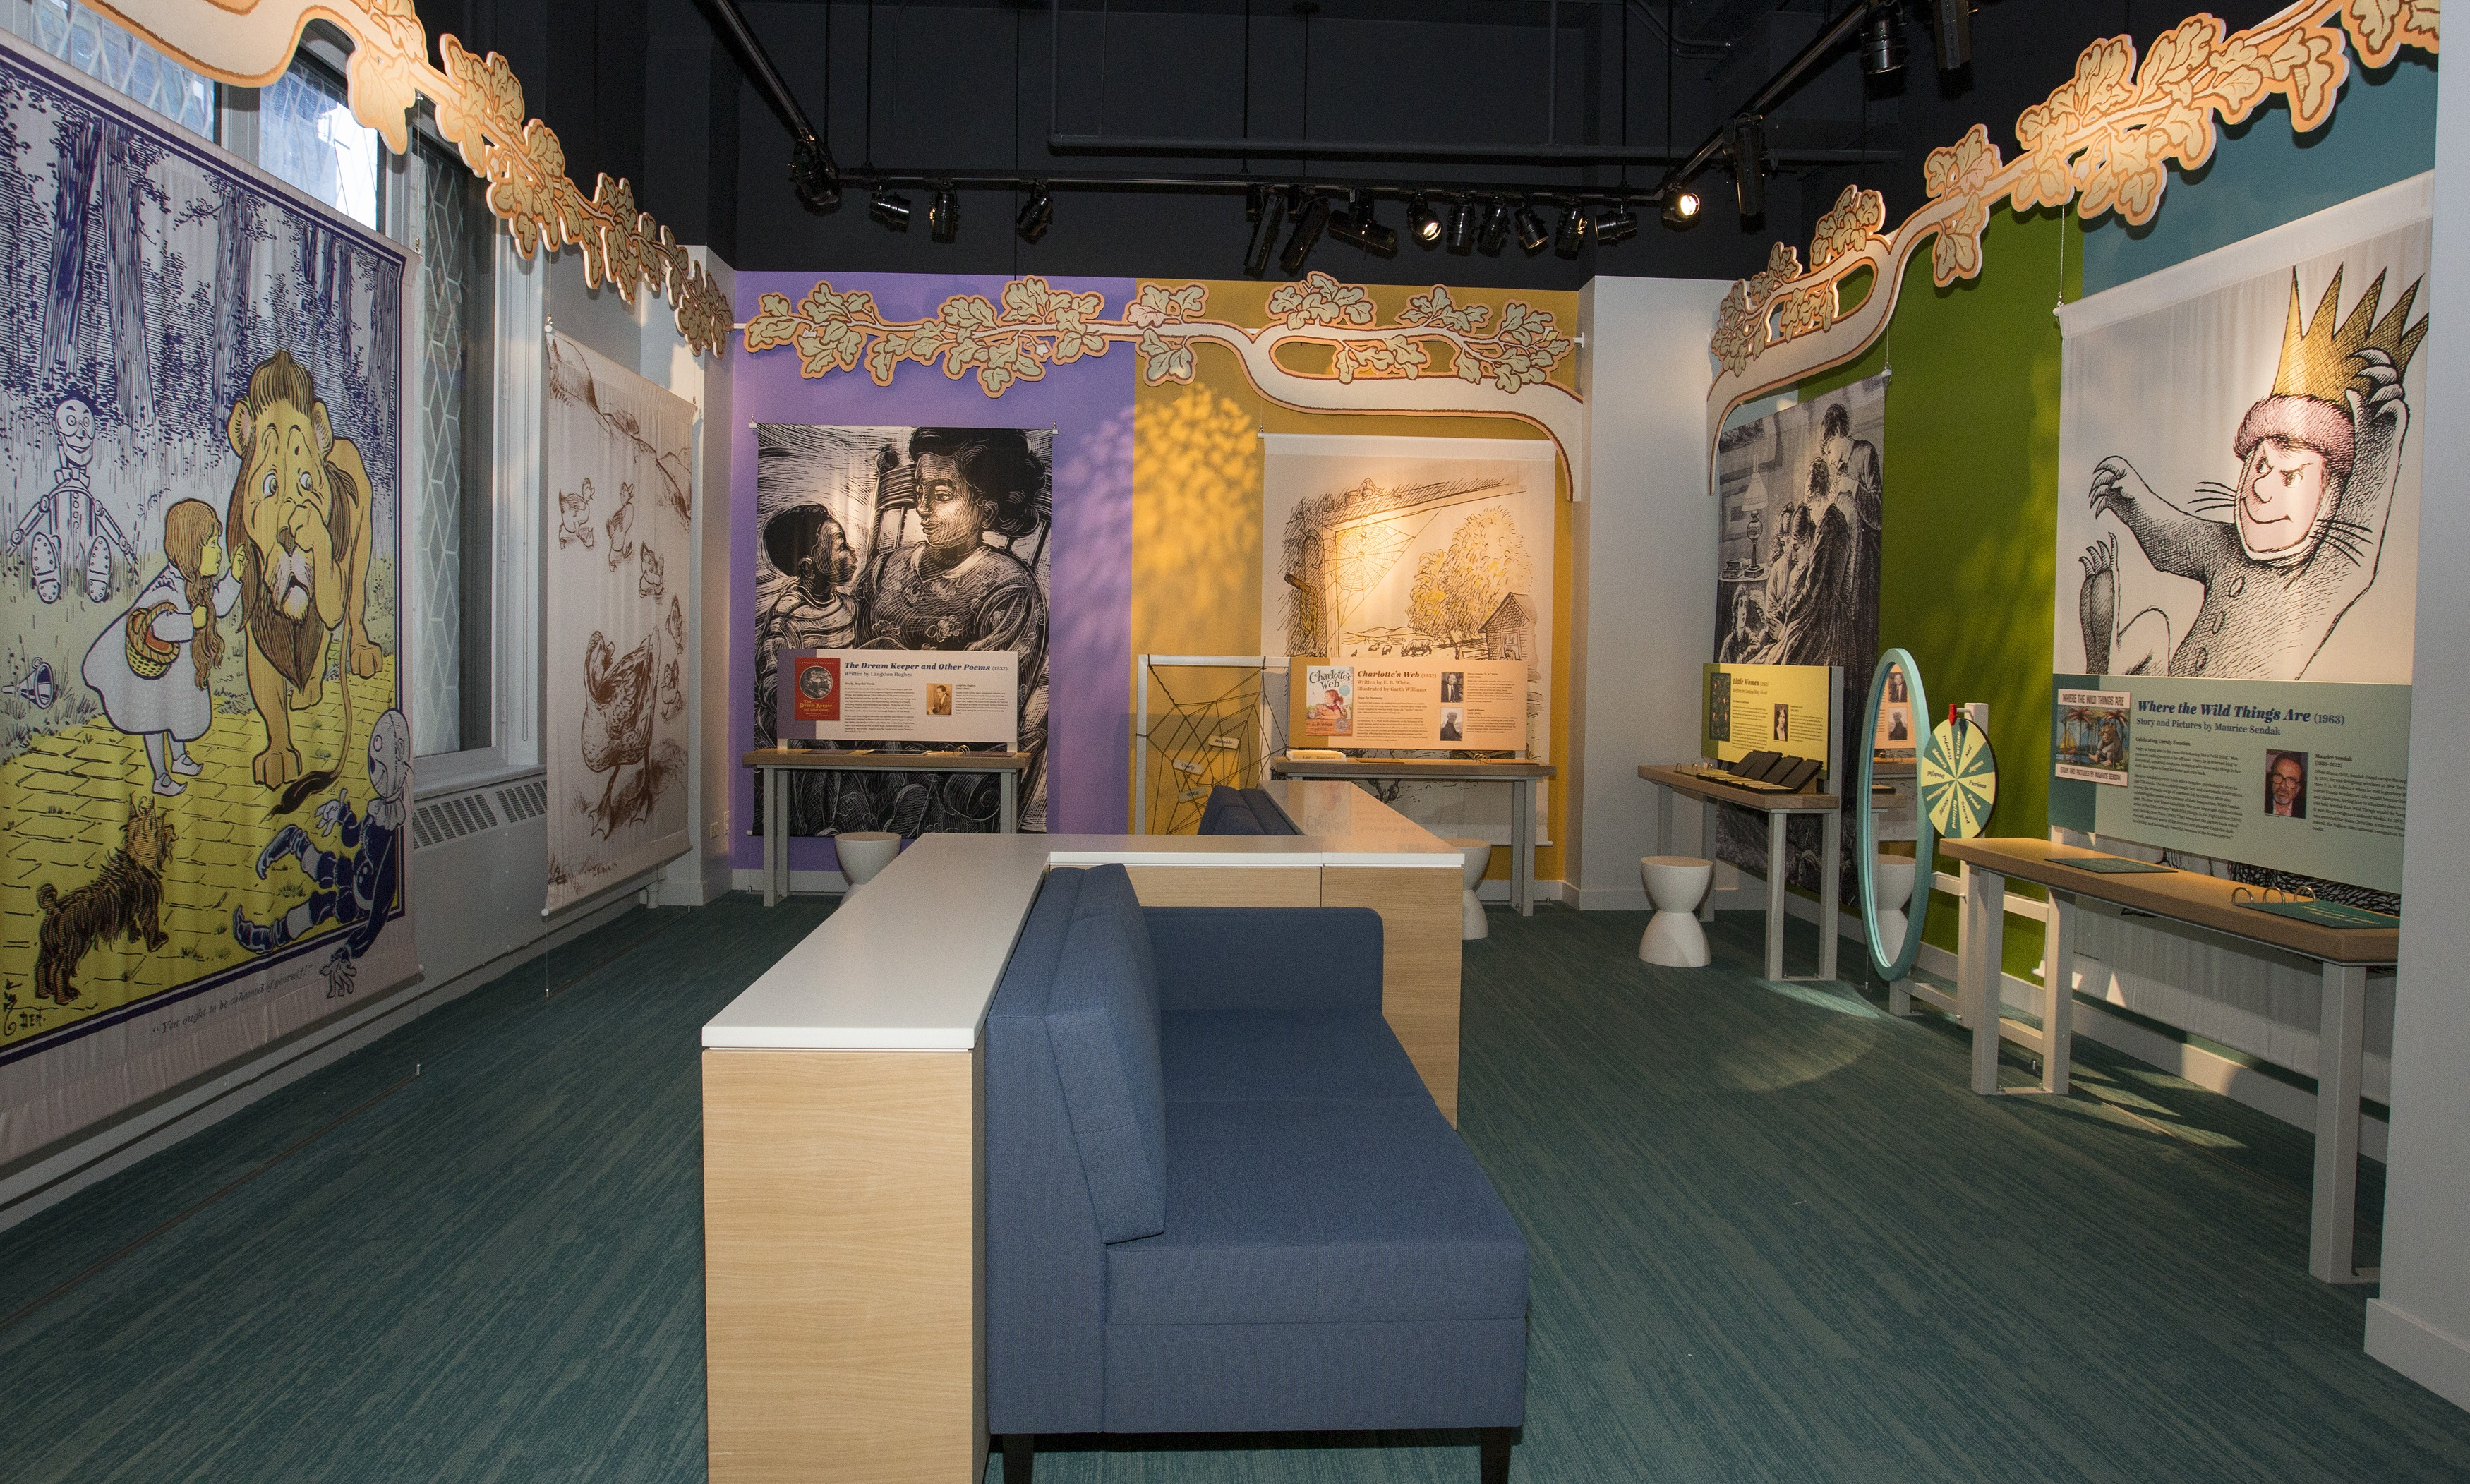 A new museum in Chicago honors writers with scents, visuals